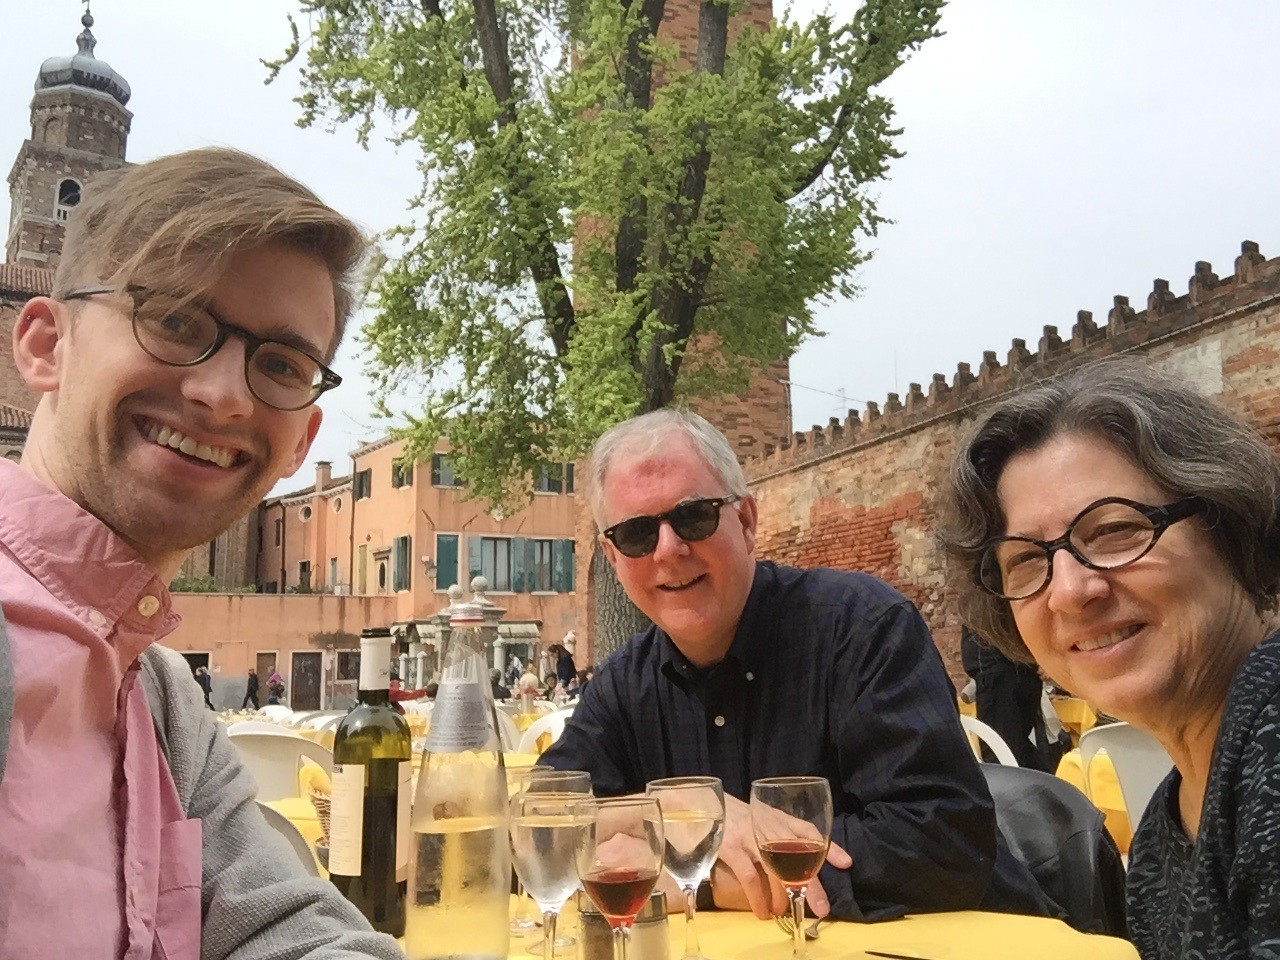 Enjoying lunch with Andrew and Candice in Murano